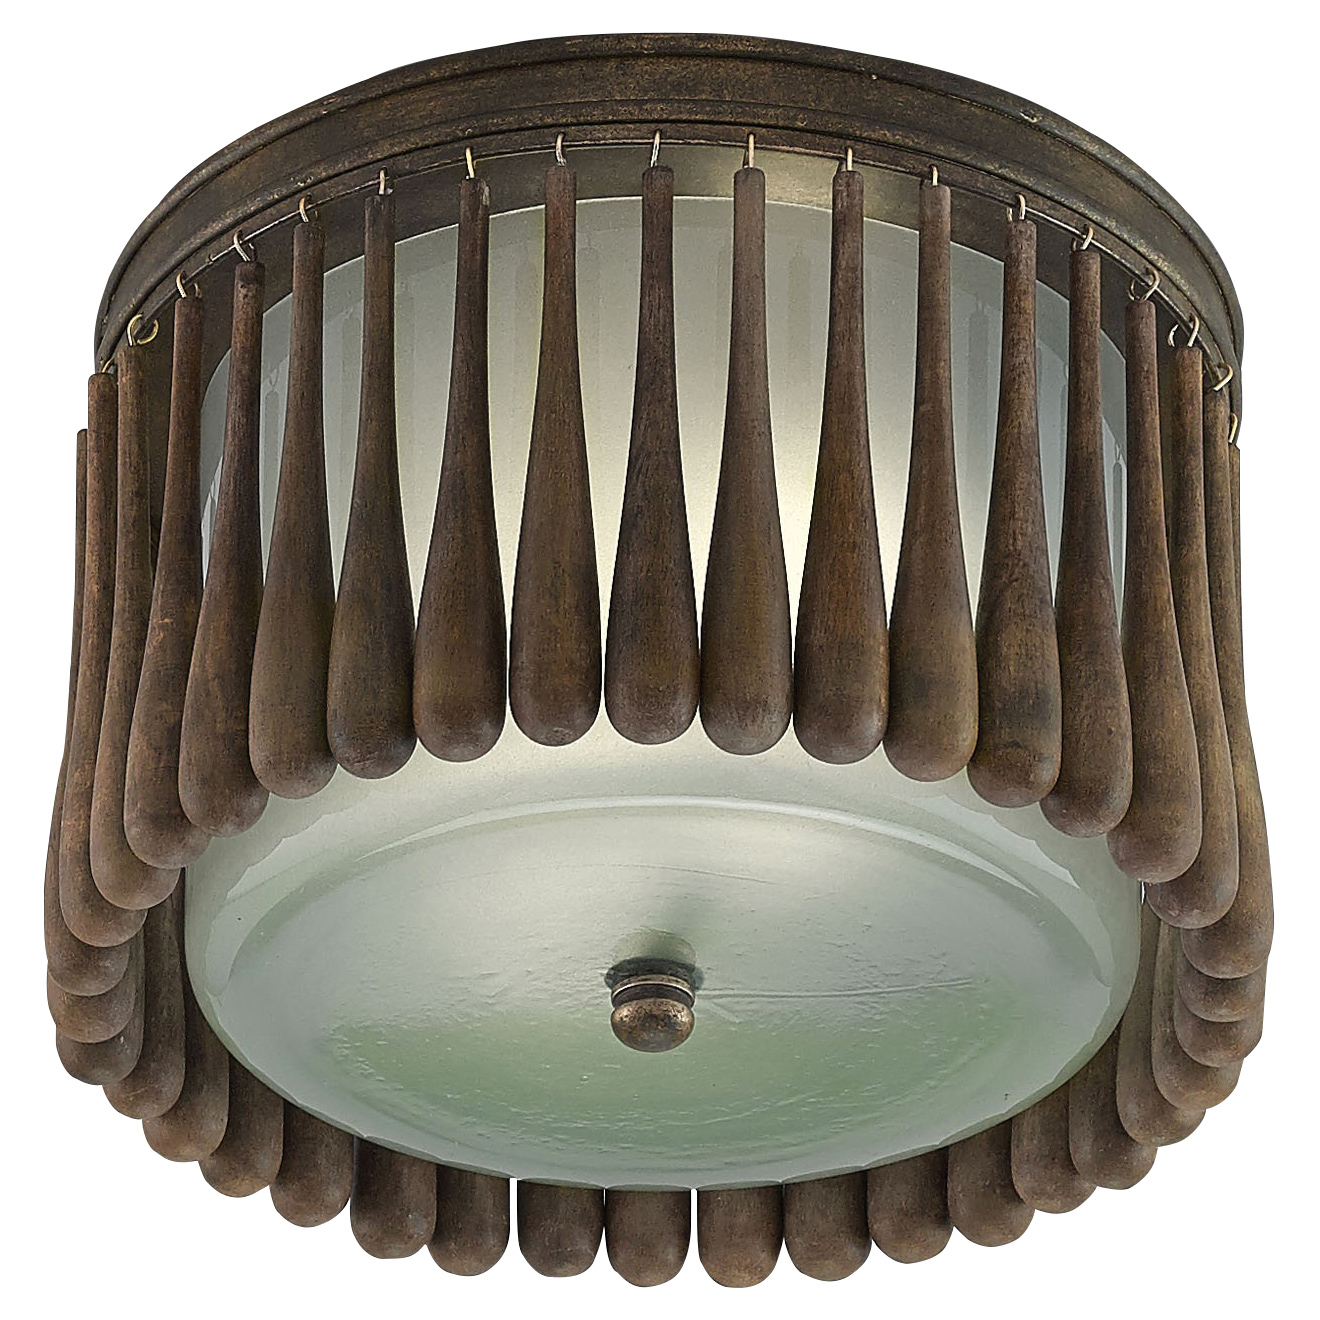 Barclay Rustic Lodge Wood Iron Round Ceiling Mount